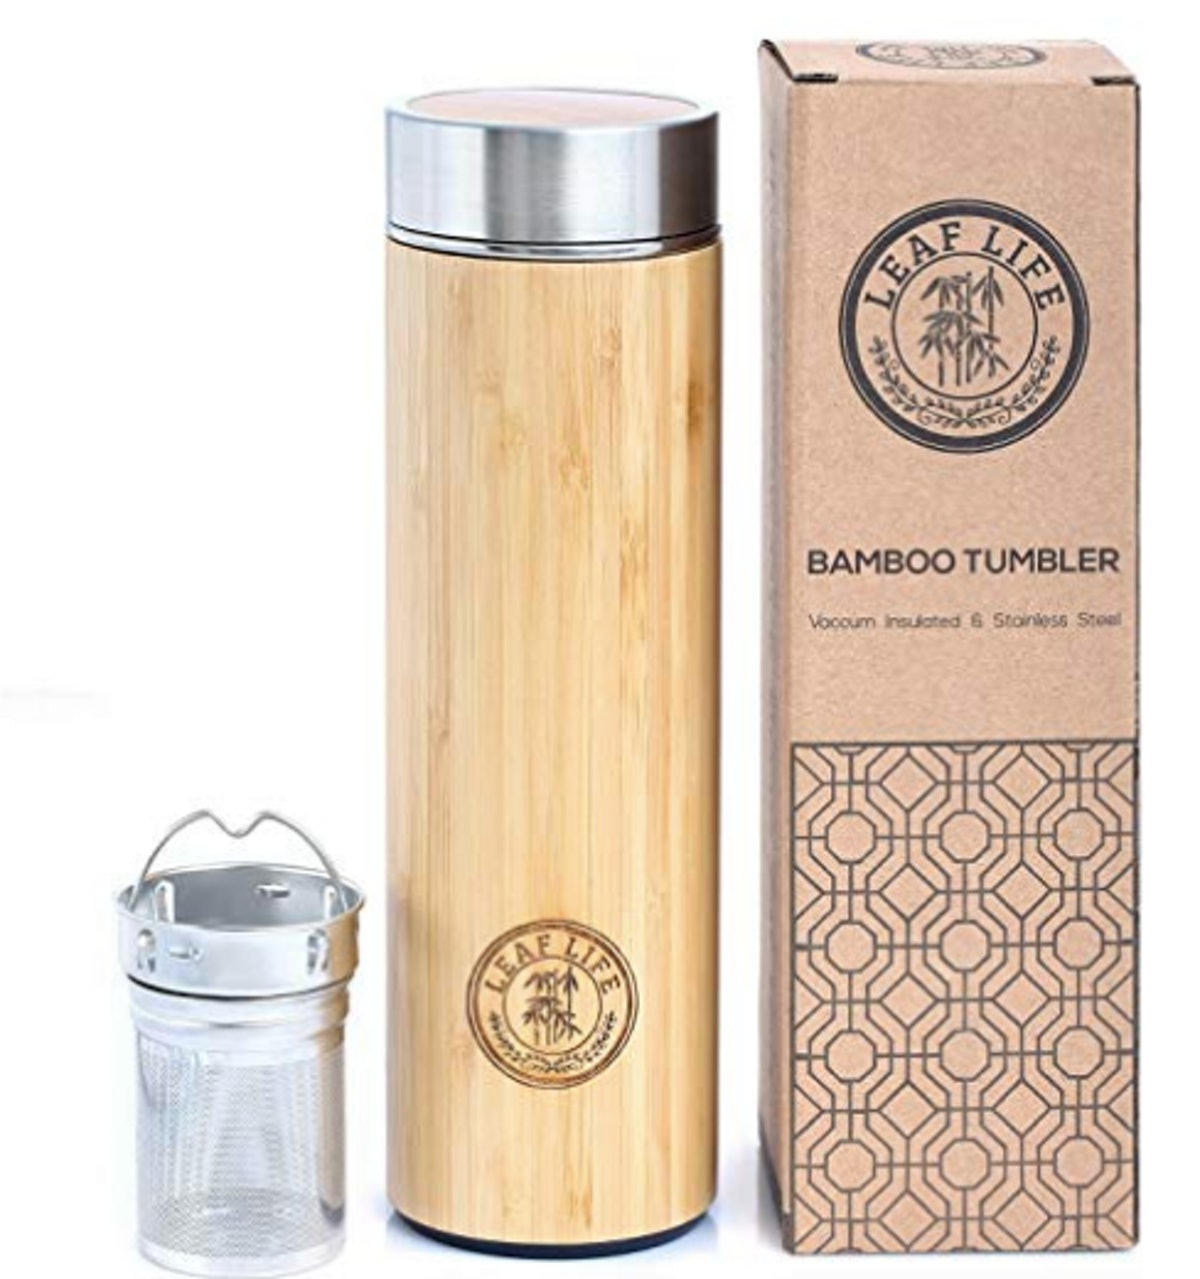 Original Bamboo Tumbler with Tea Infuser & Strainer by LeafLife